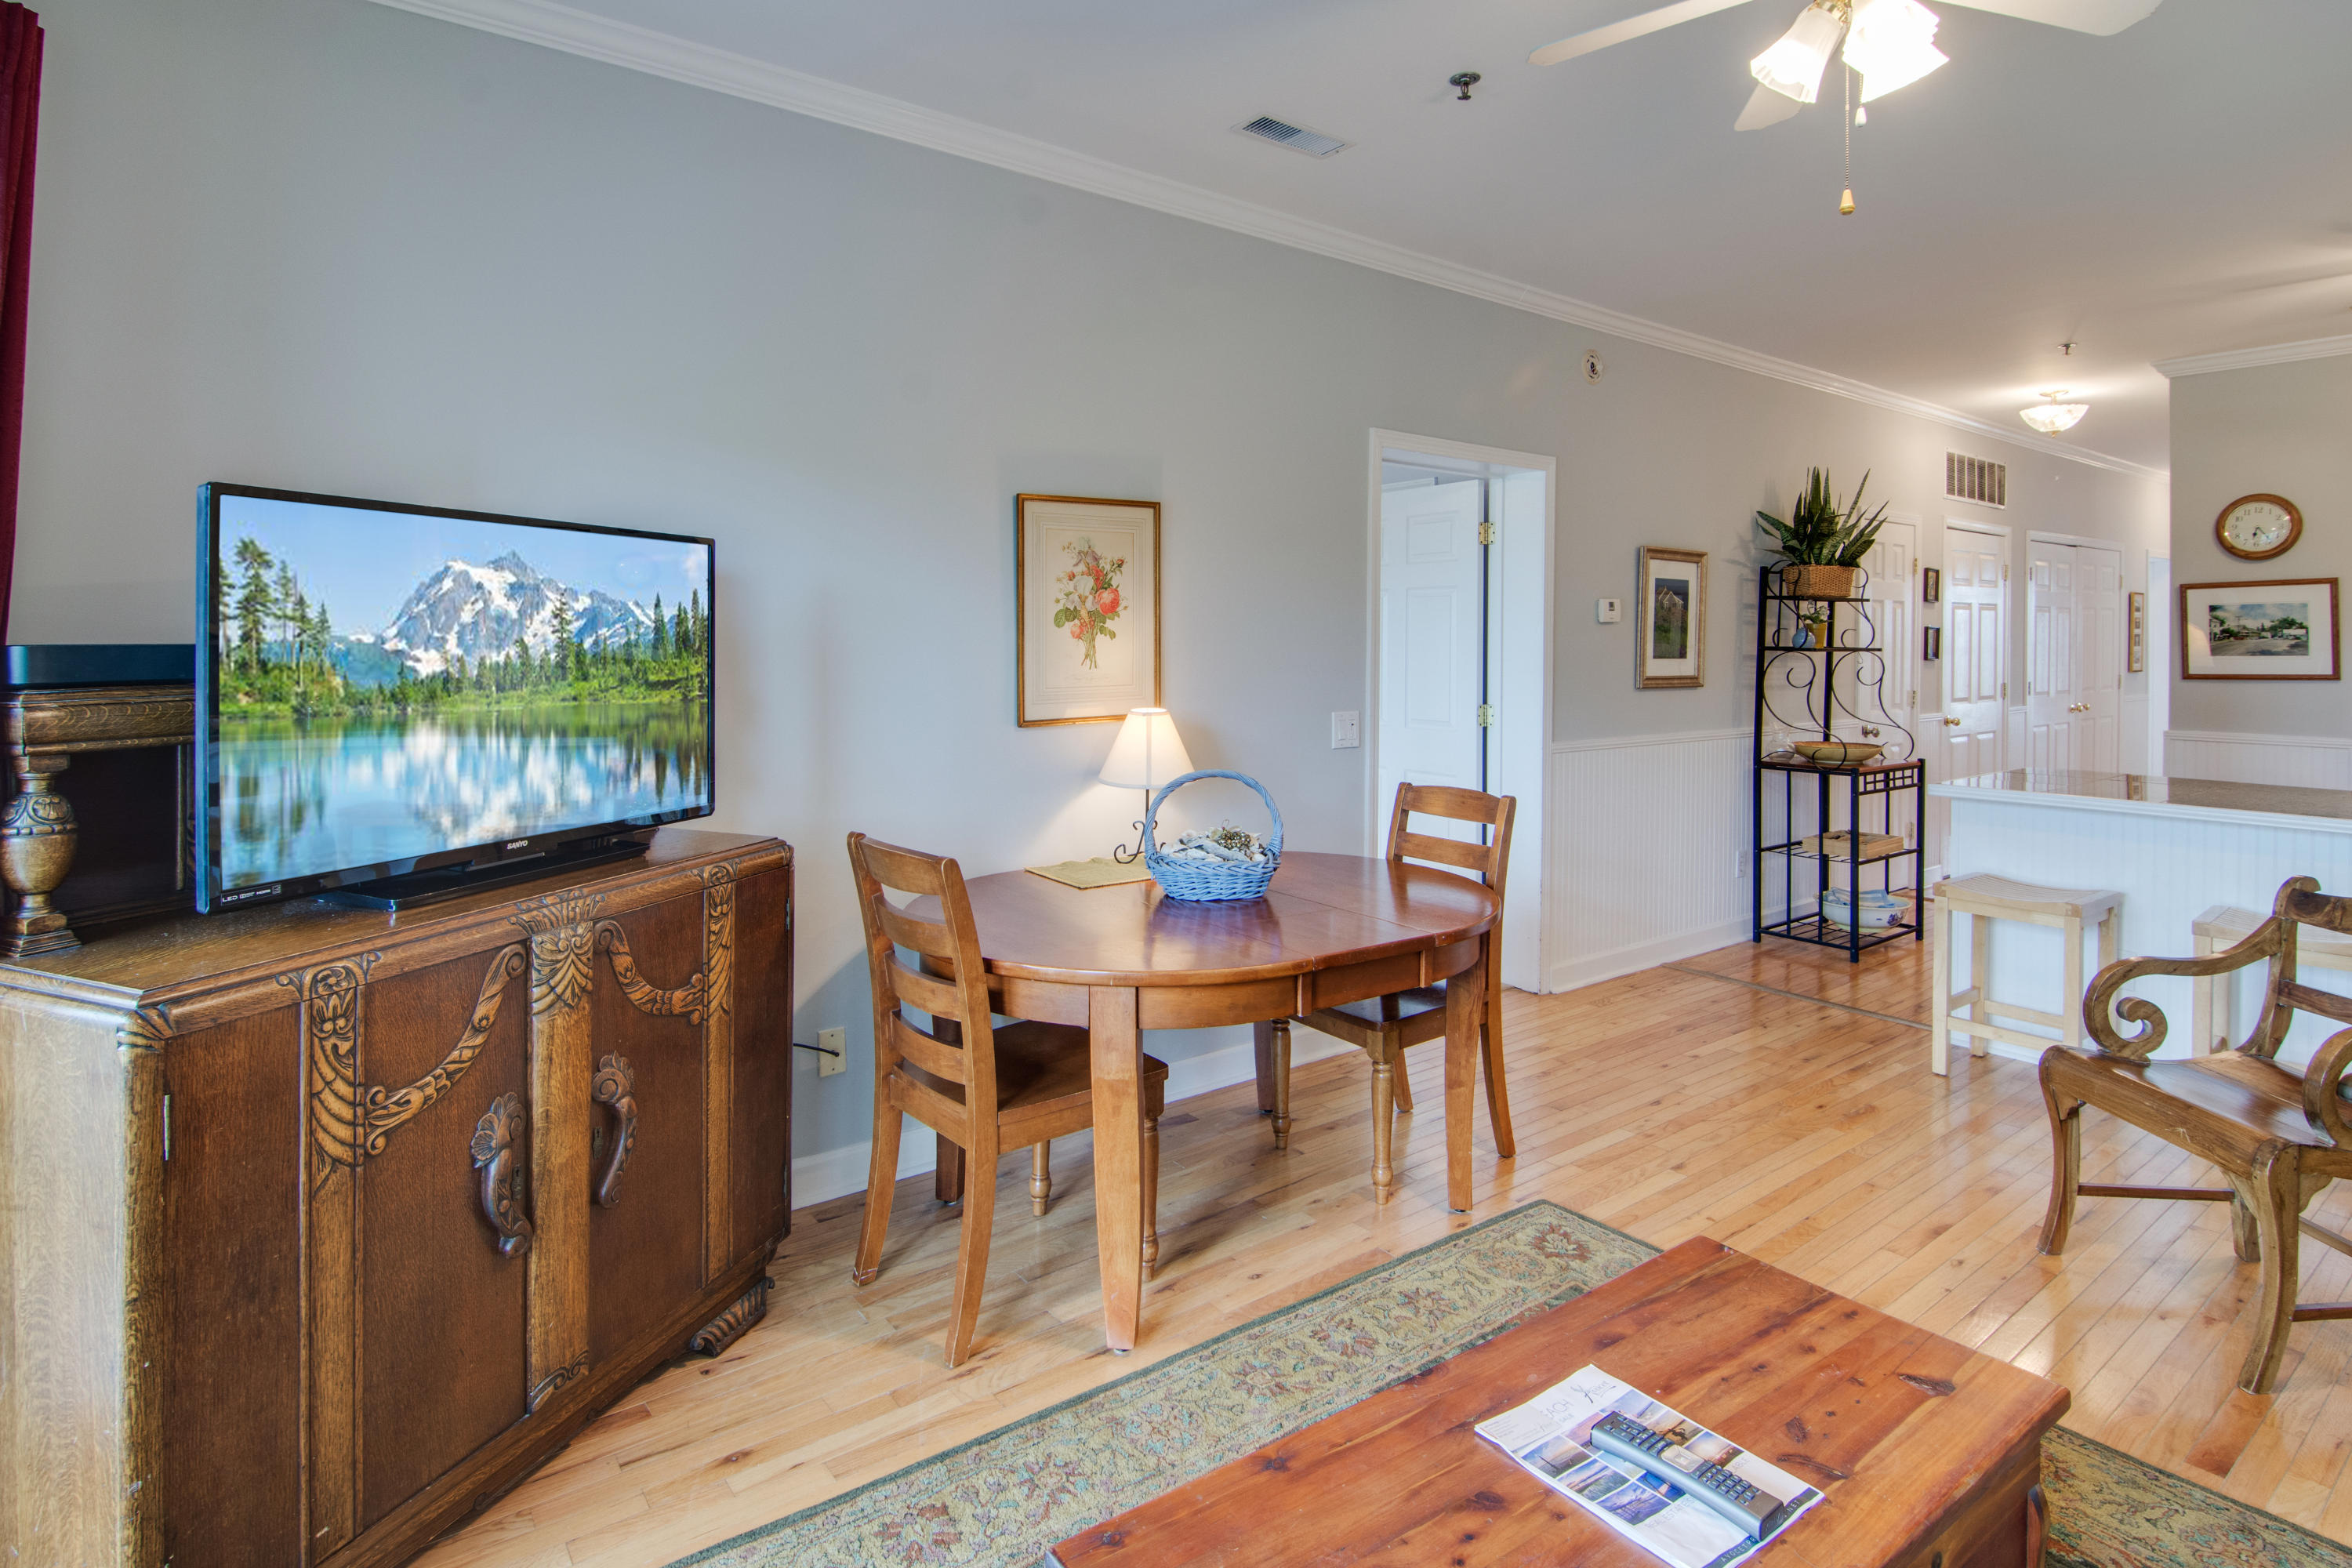 2393 Folly Road #2k, Folly Beach, SC.| MLS# 18024248 | Homes For Sale,  Property Search In